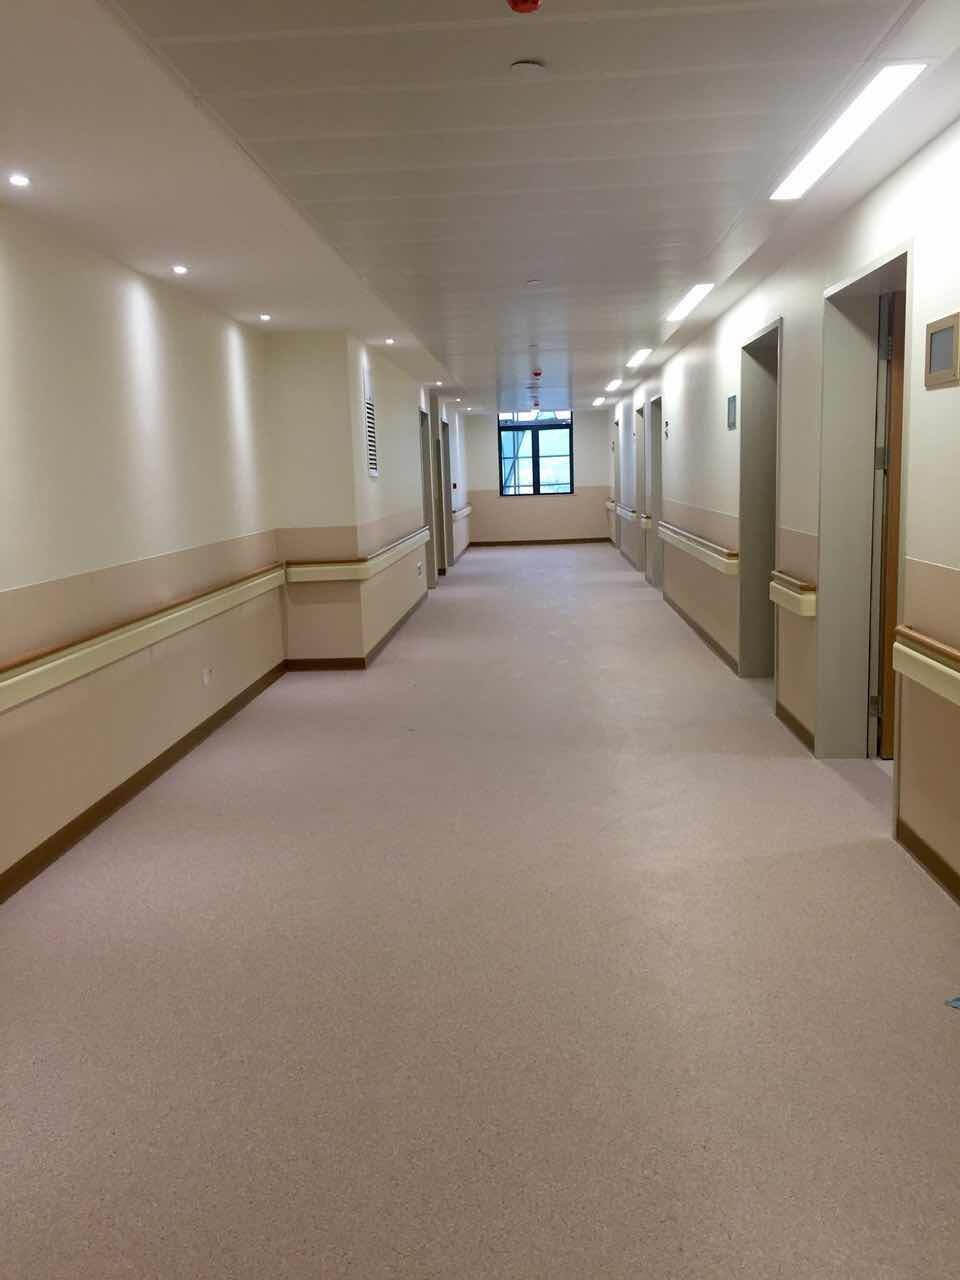 China Anti Collision Hospital Corridor Pvc Handrail Photos